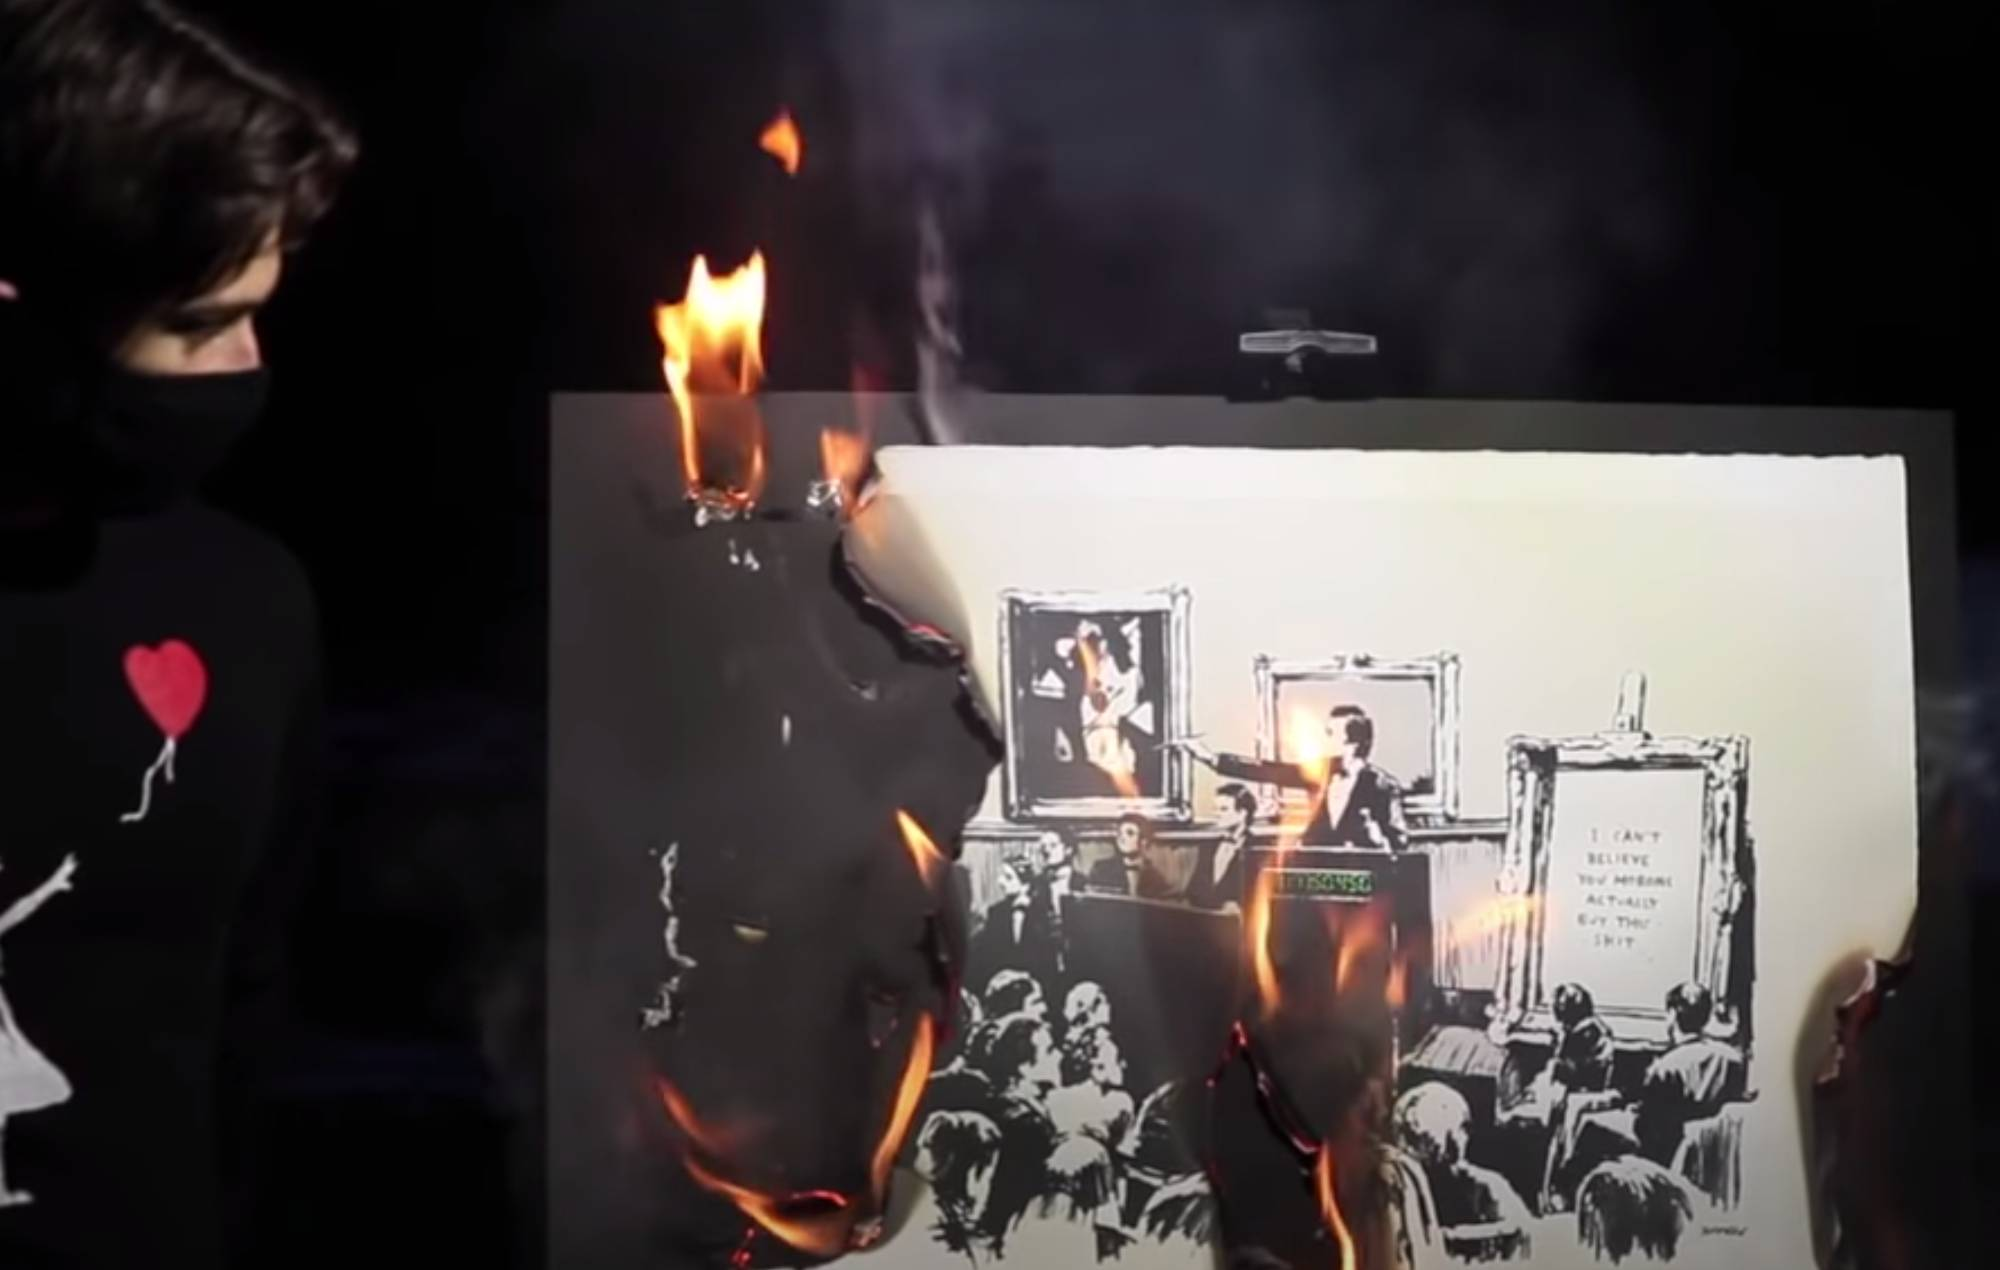 Original Banksy artwork burned by cryptocurrency group and sold as NFT for $382,000